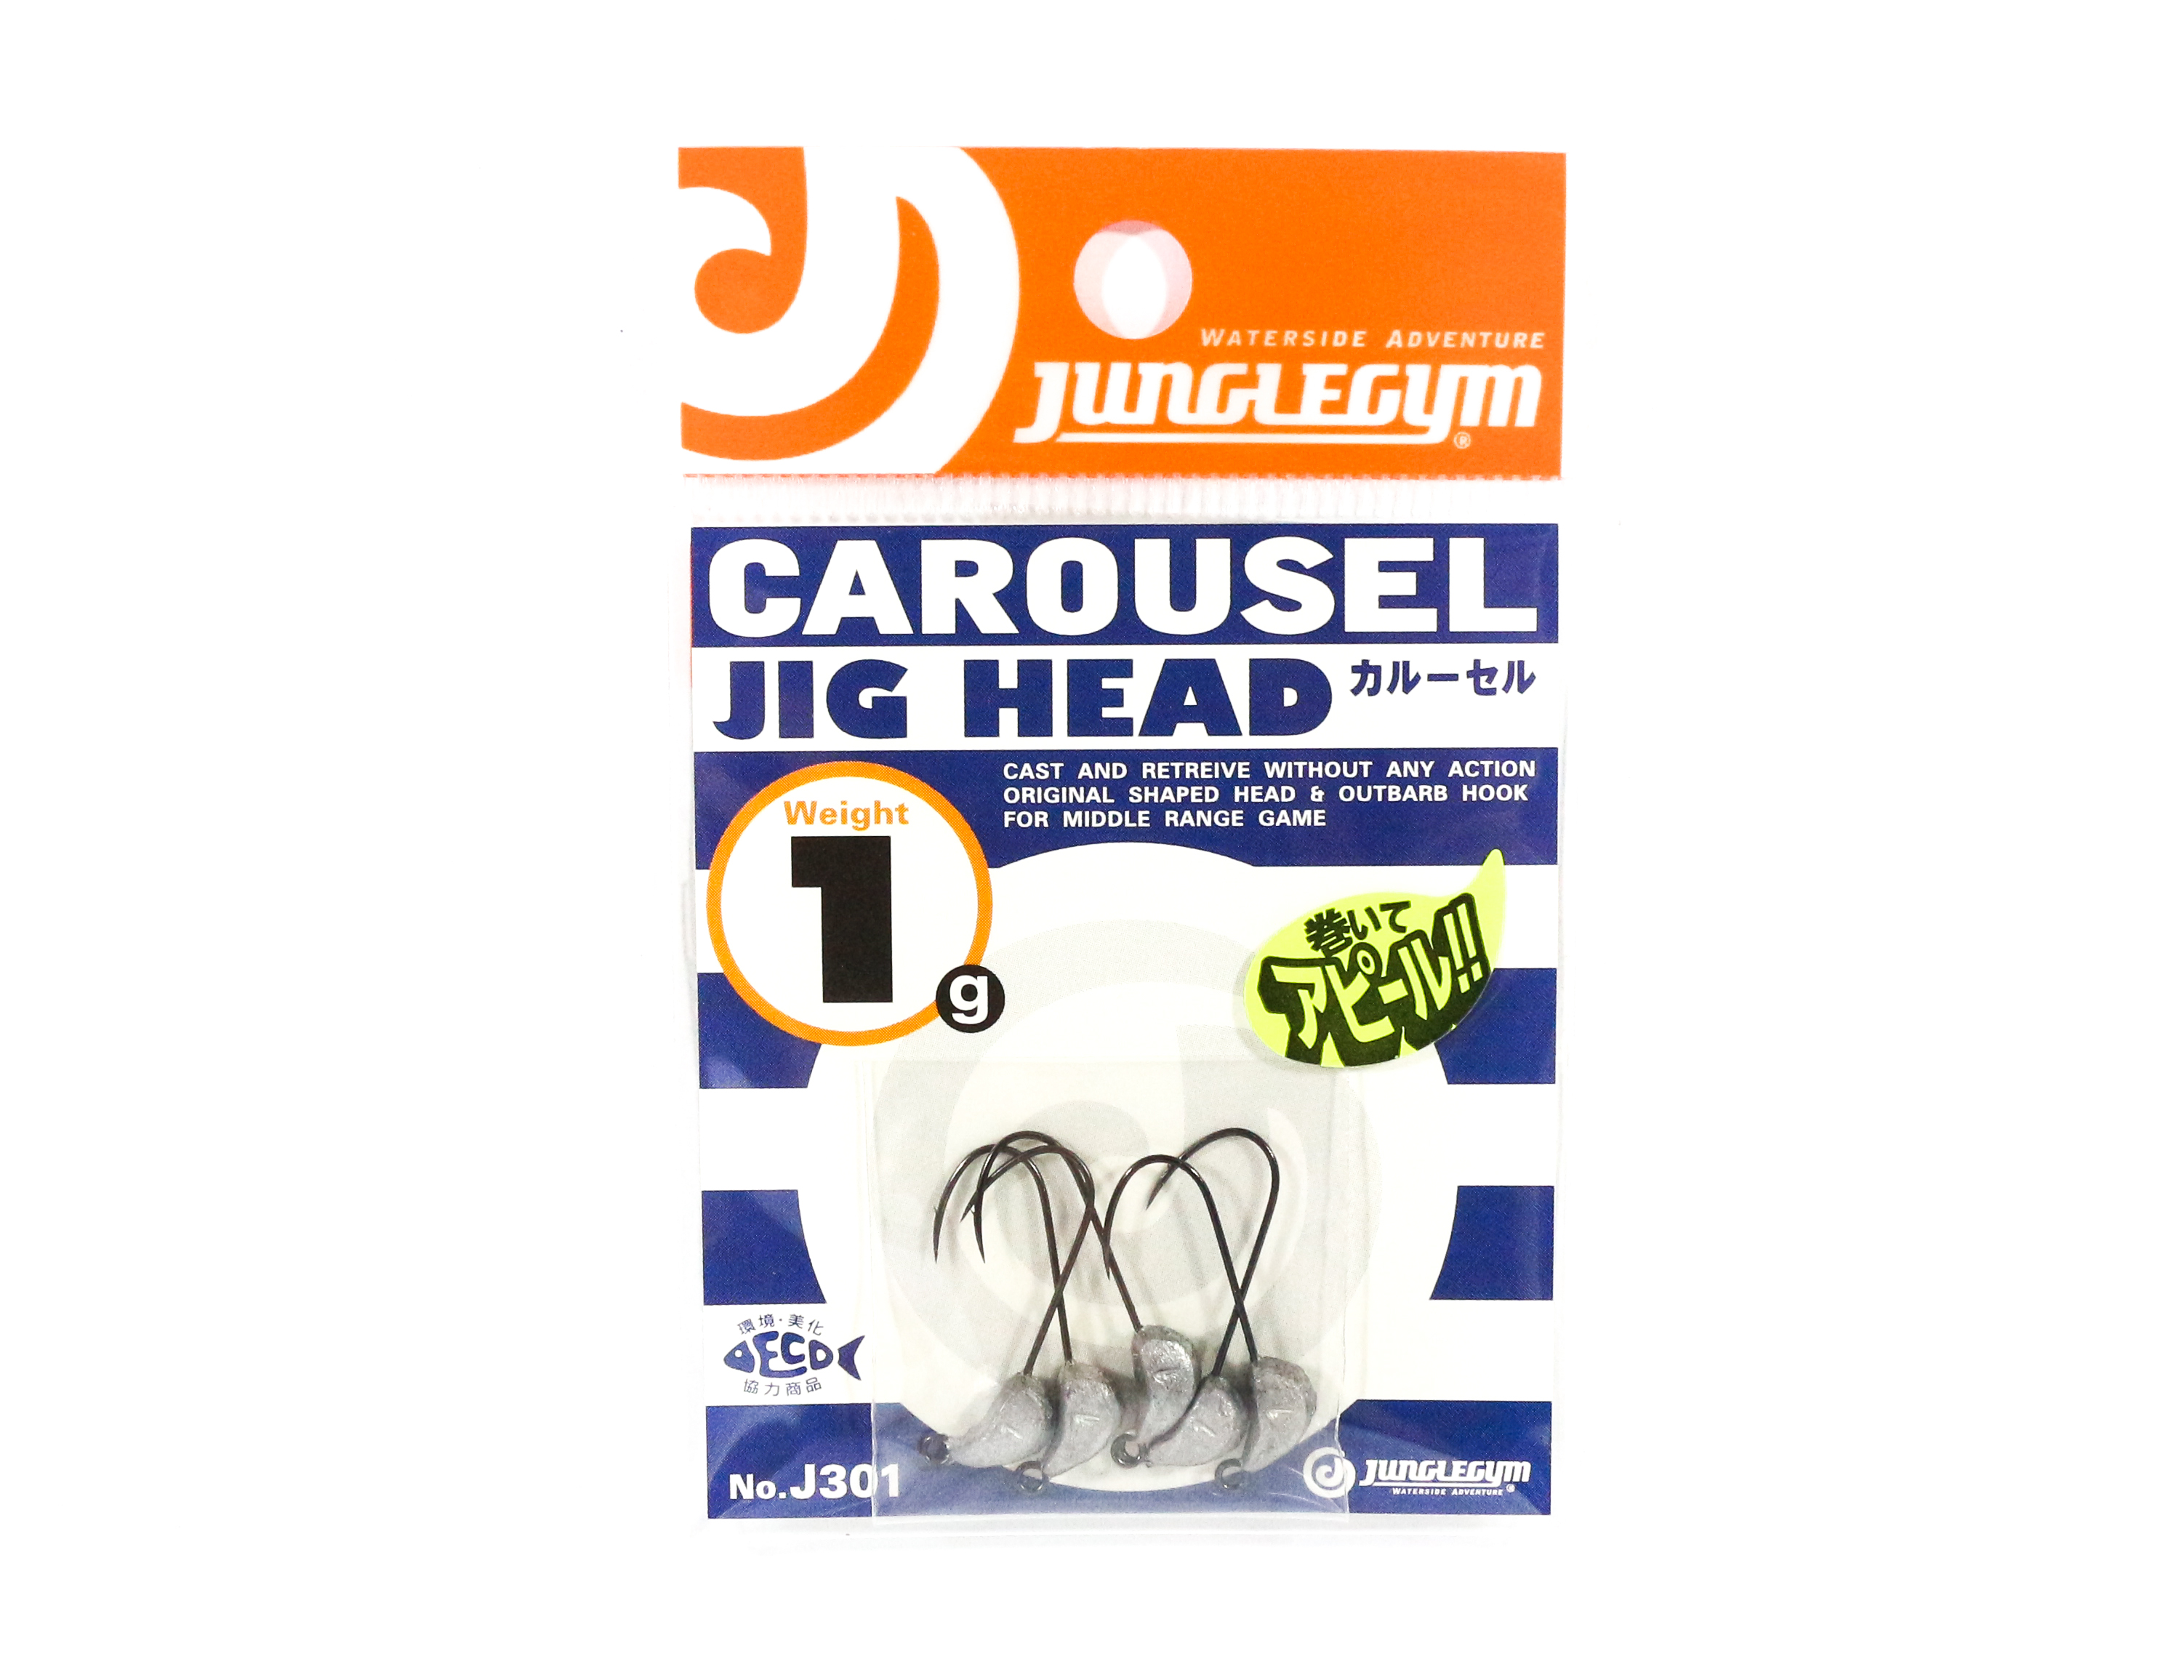 Jungle Gym J301 Jig Head Carousel 1 grams Hook Size 5 (7635)